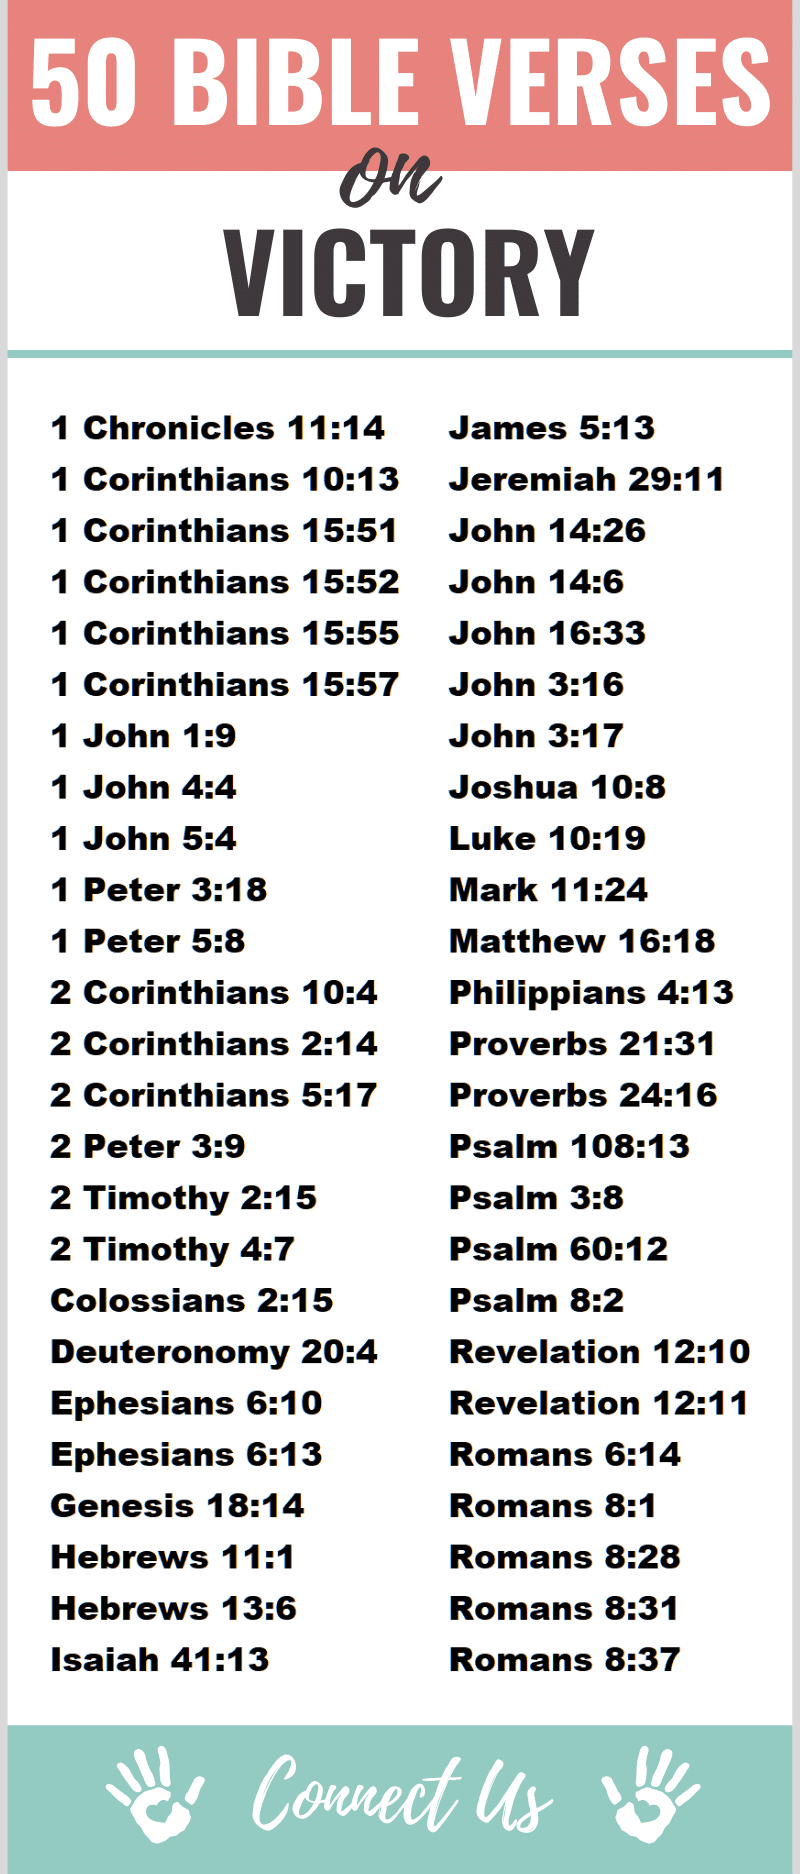 Bible Verses on Victory